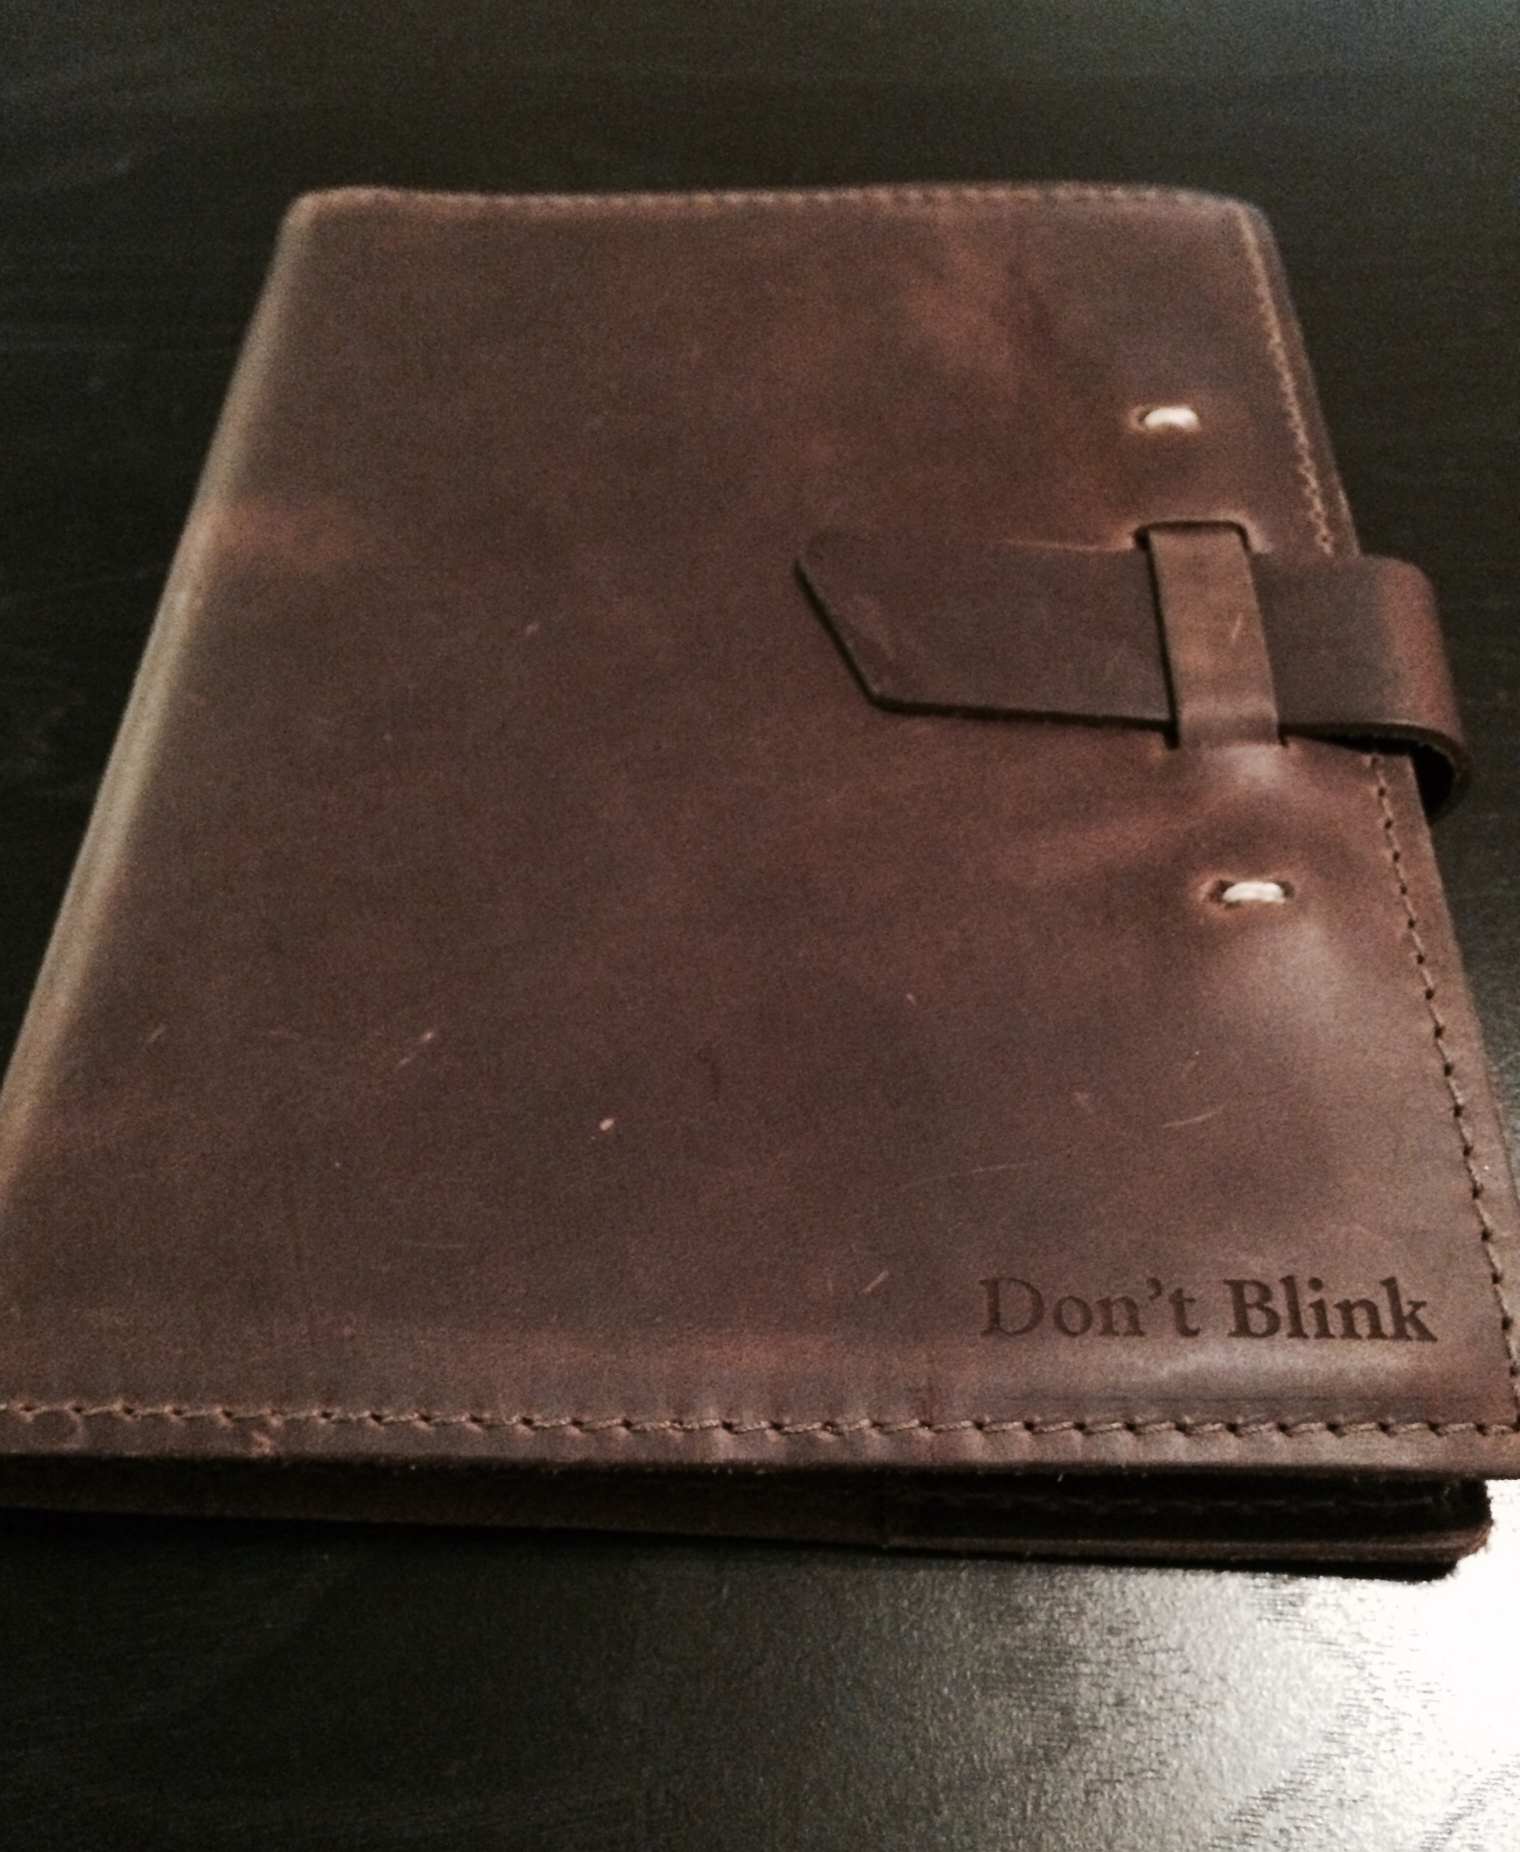 The new journal that Sid gave to me. Don't Blink.